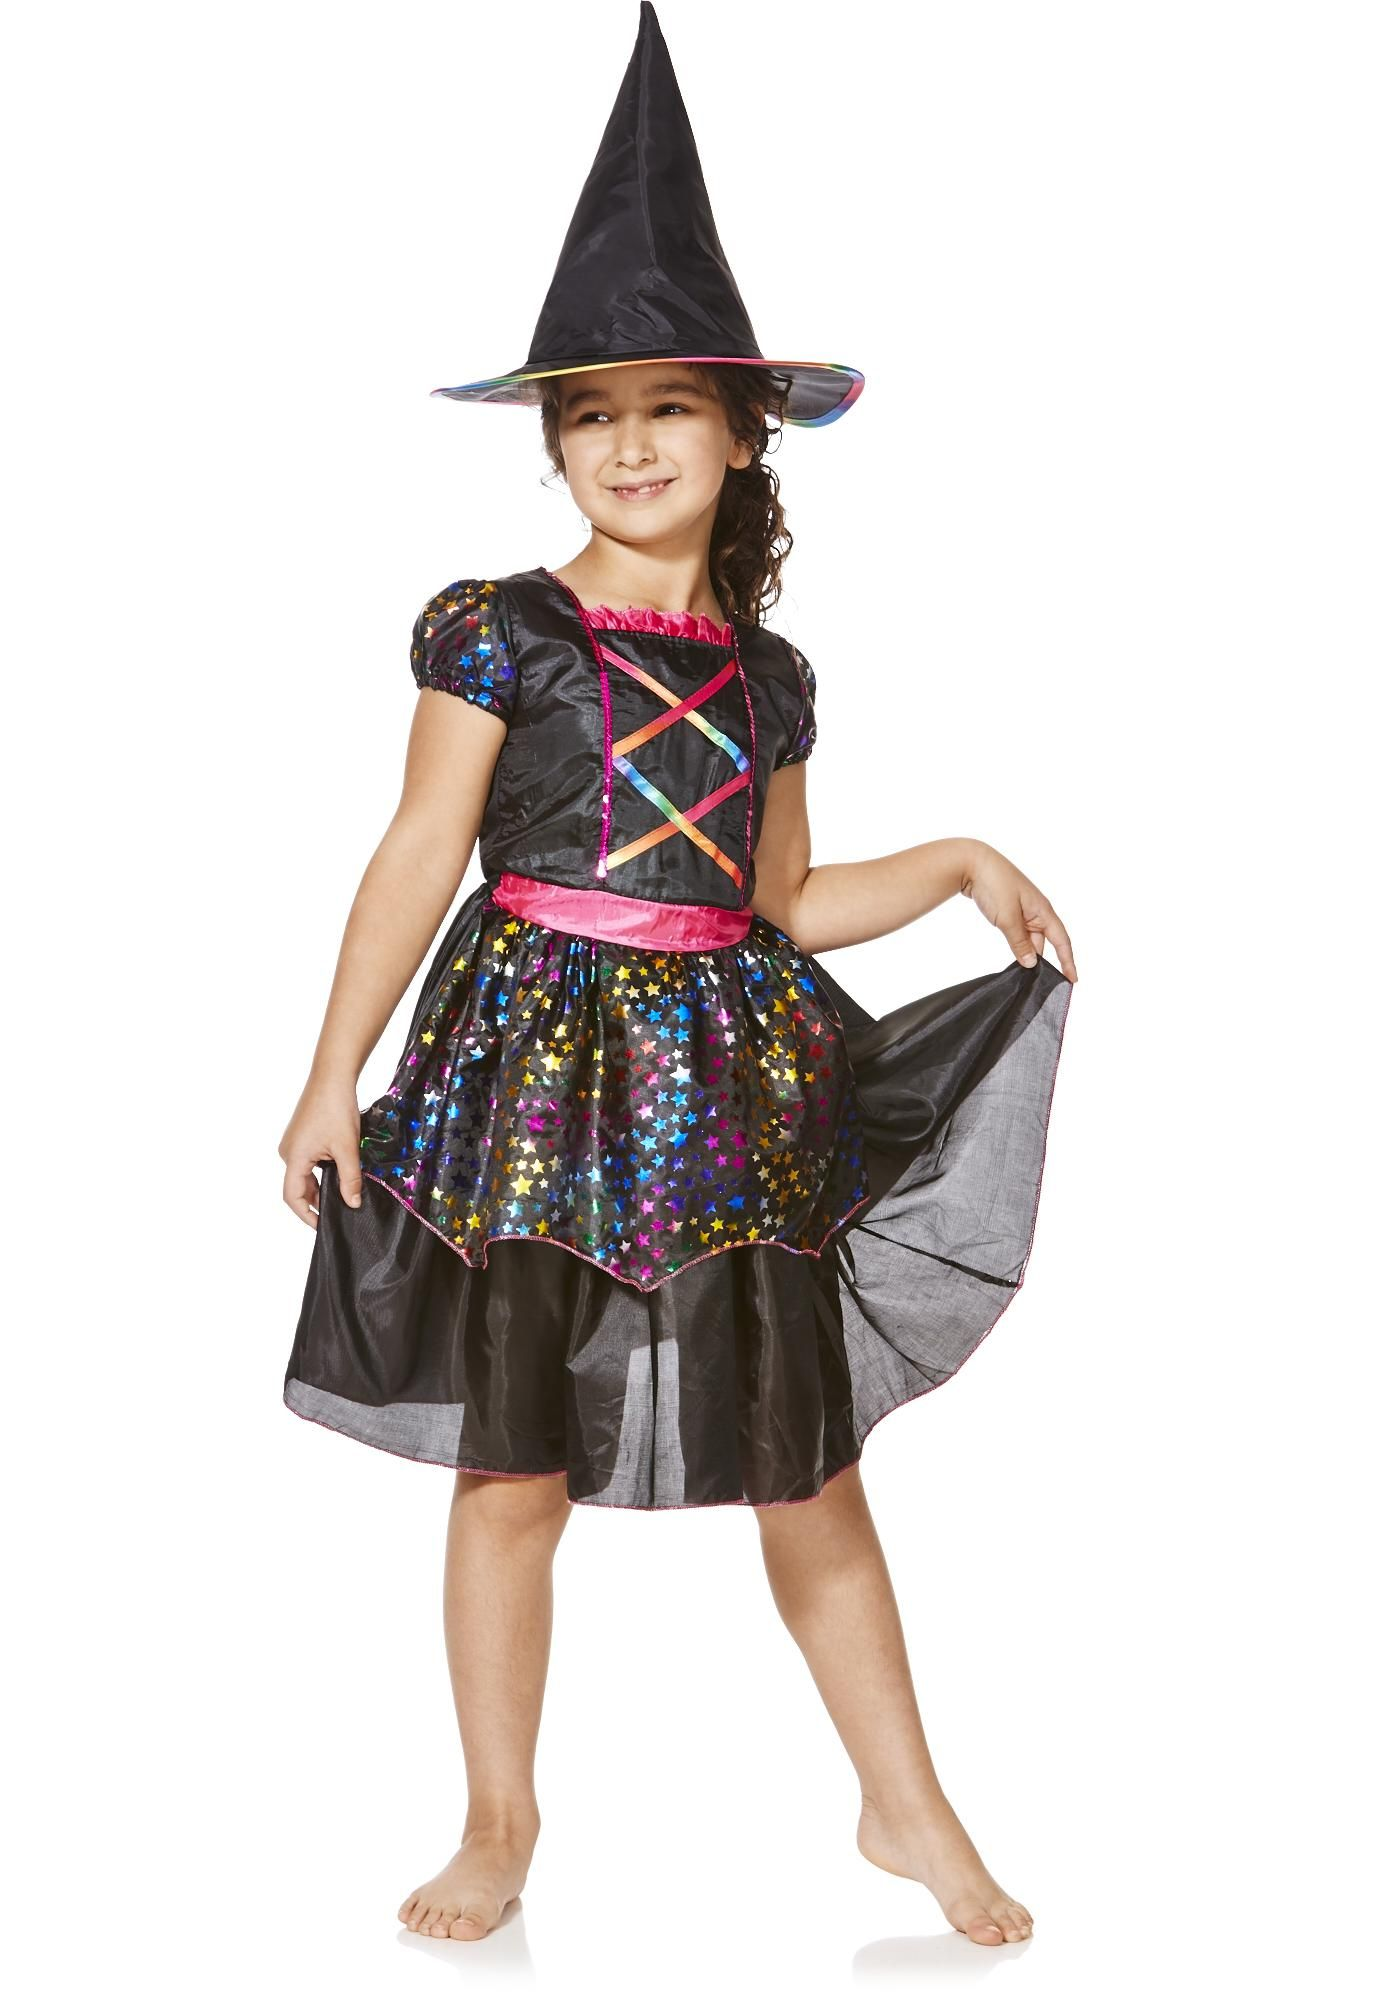 Tesco F&F Halloween Rainbow Witch DressUp Costume €8